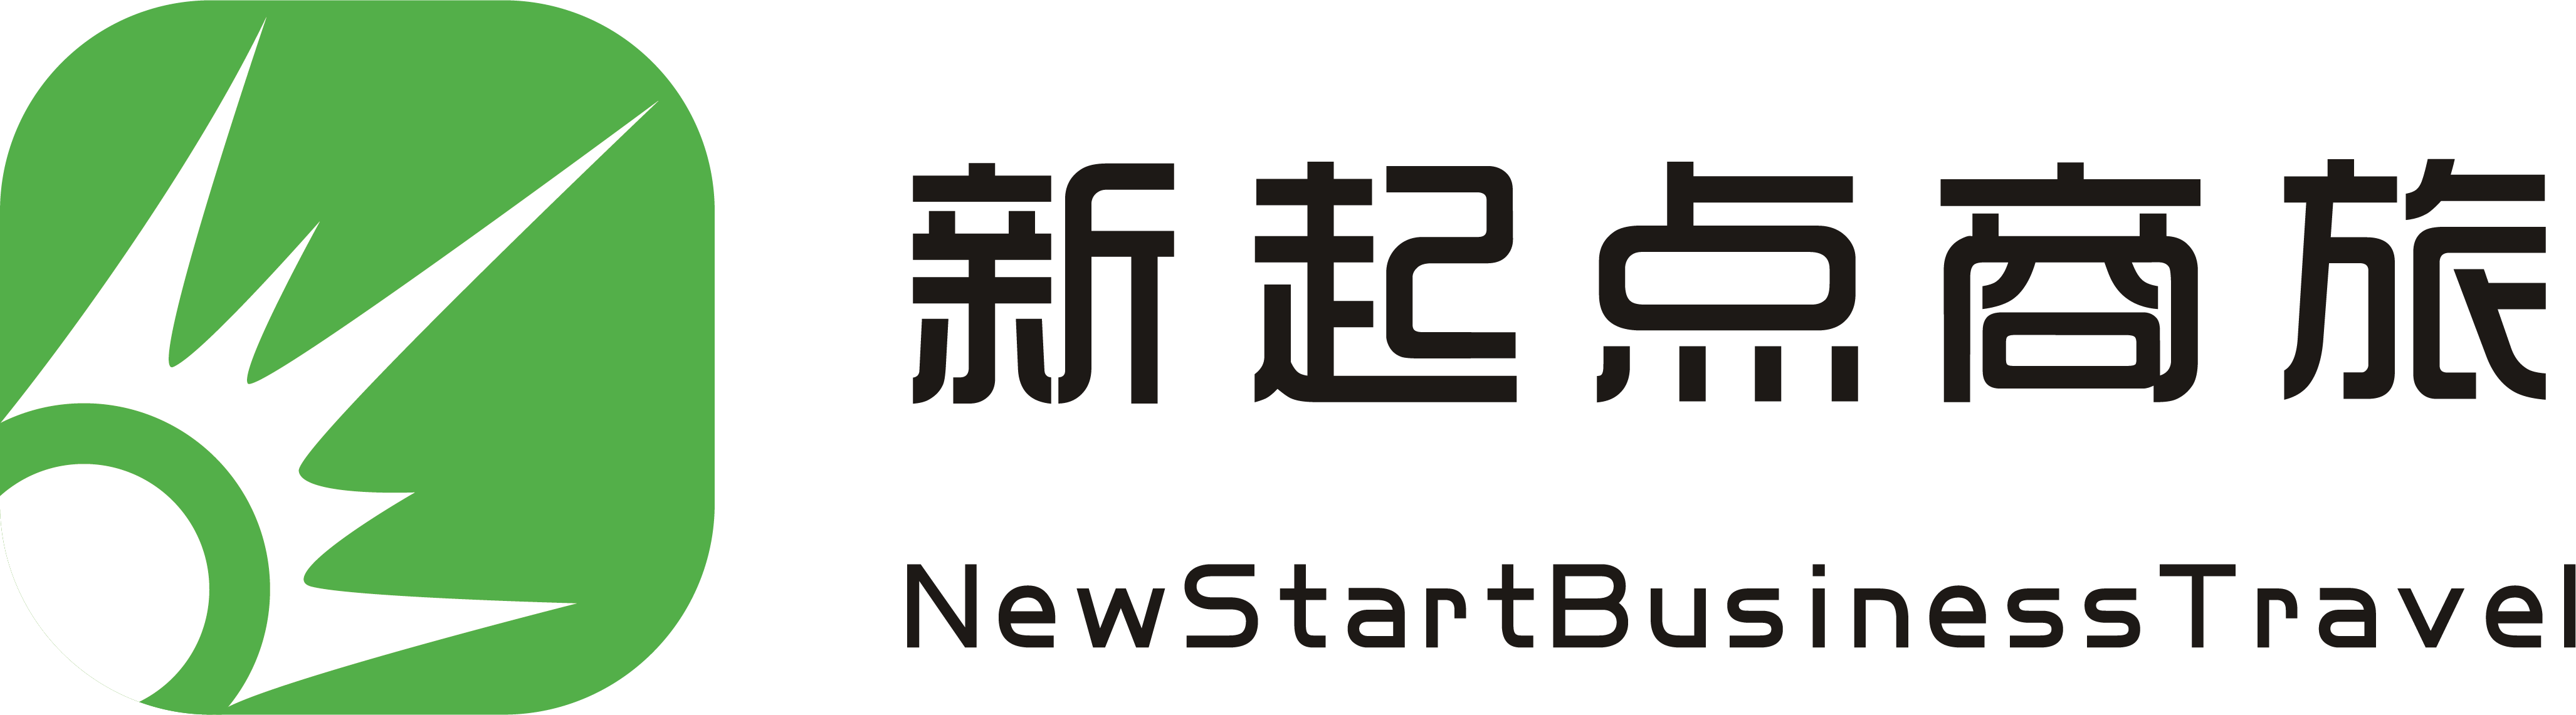 Guangzhou new starting point Business Travel Service Co., Ltd